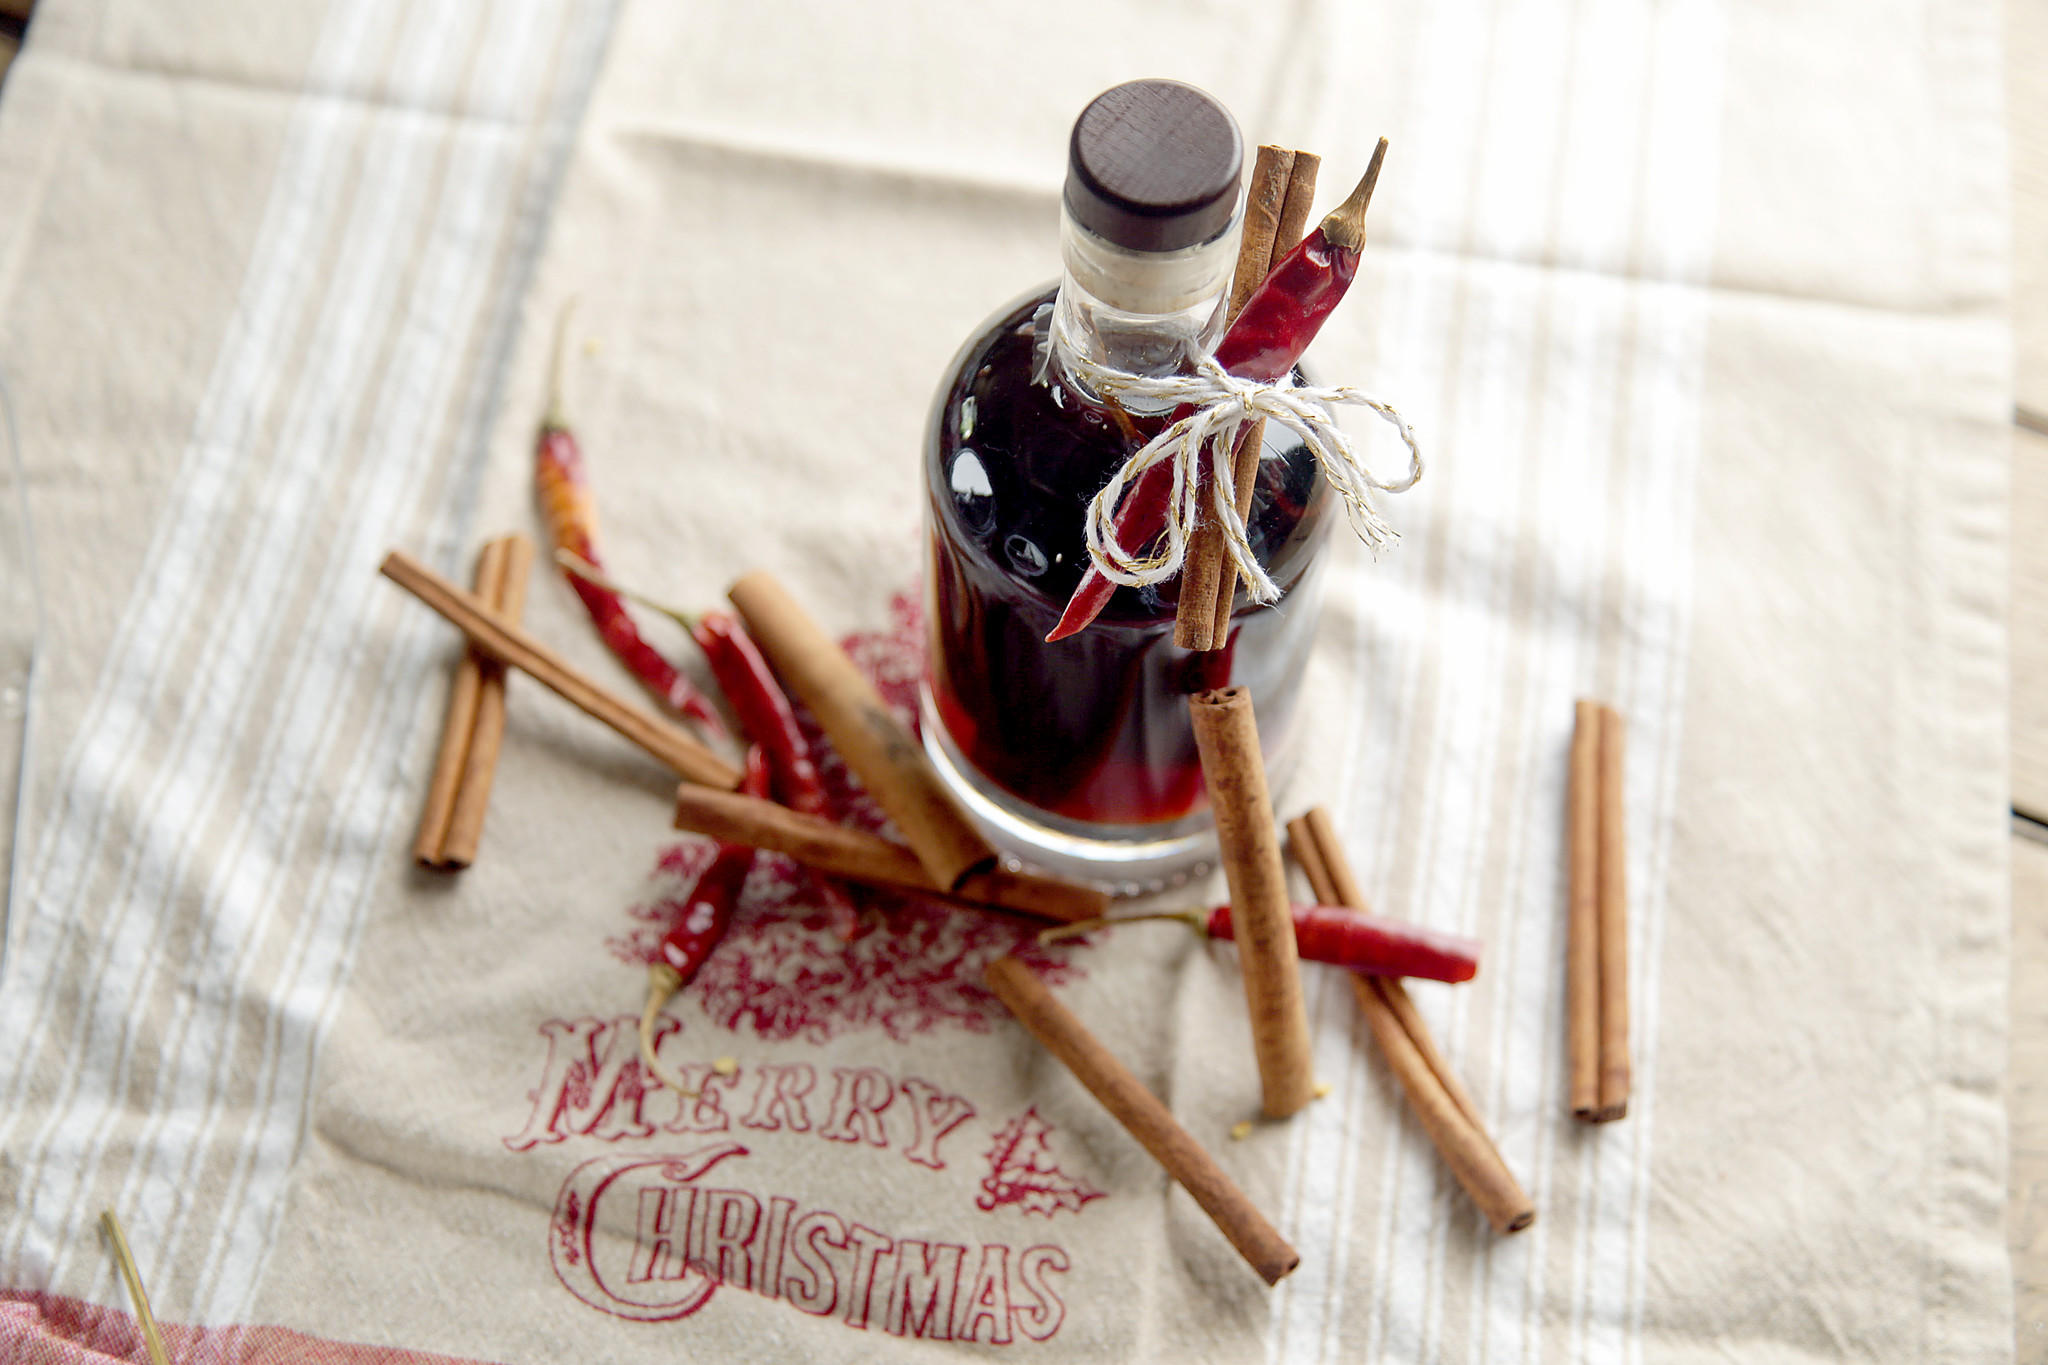 Homemade cinnamon-spiced whiskey